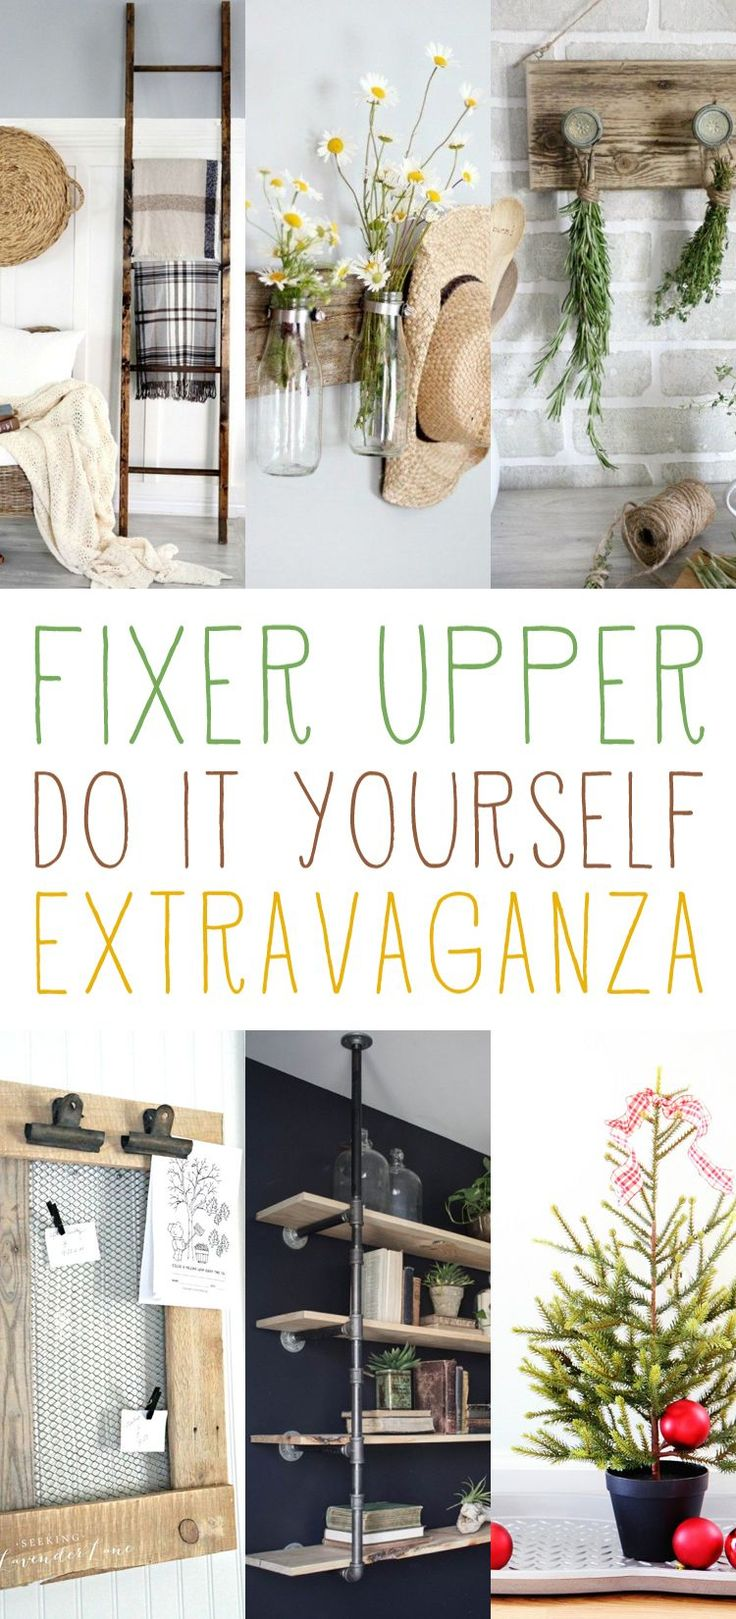 304 best images about fixer upper style on pinterest. Black Bedroom Furniture Sets. Home Design Ideas